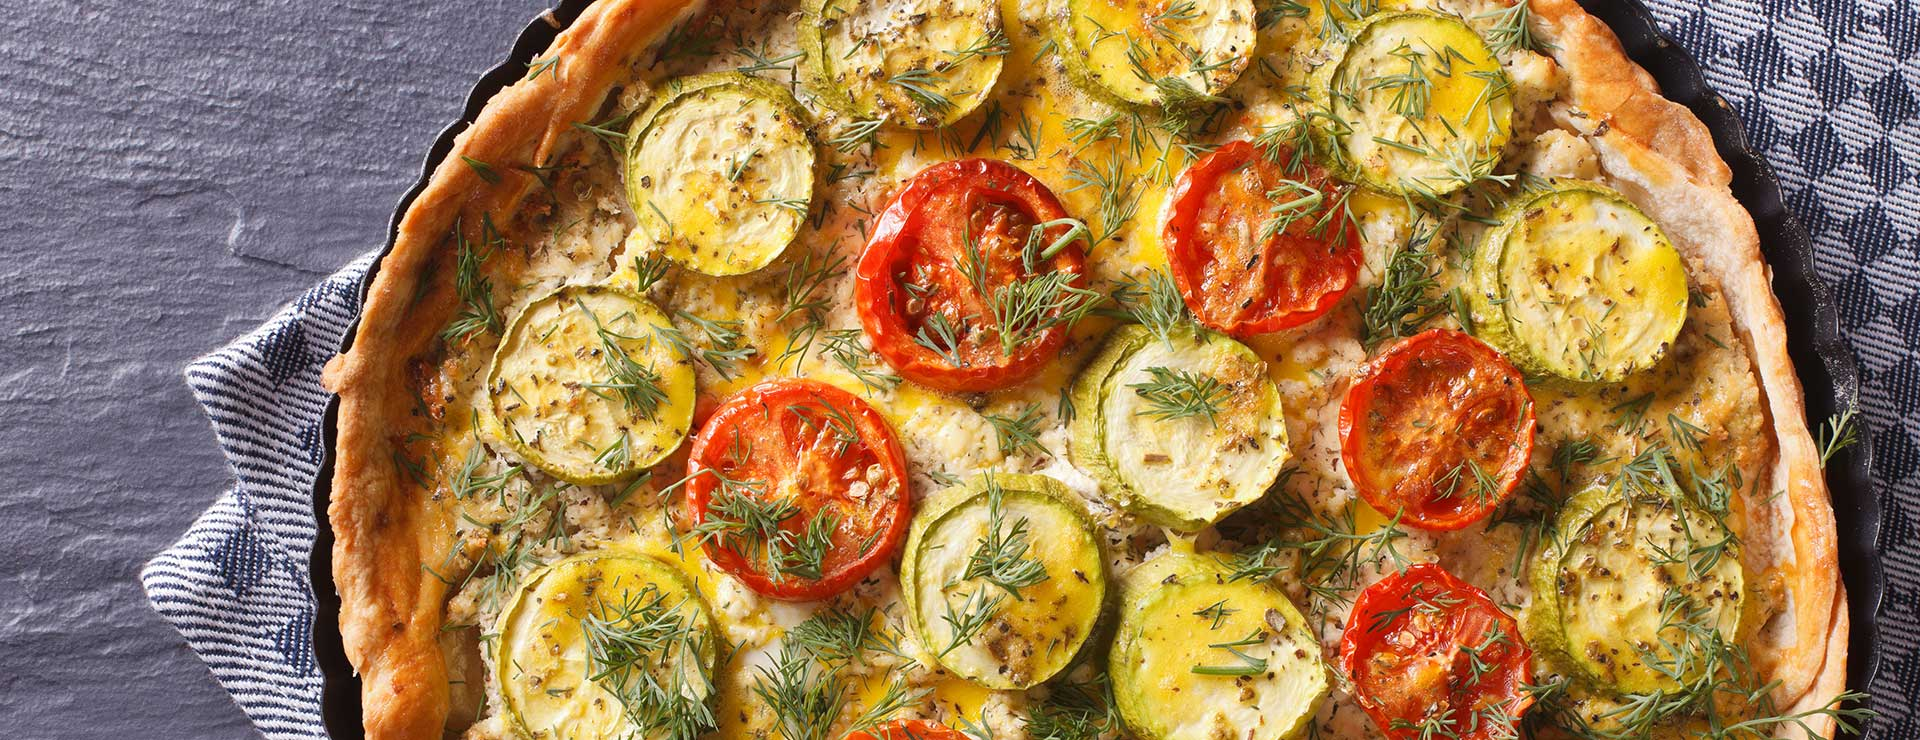 A vegetable tart, fresh from the oven.